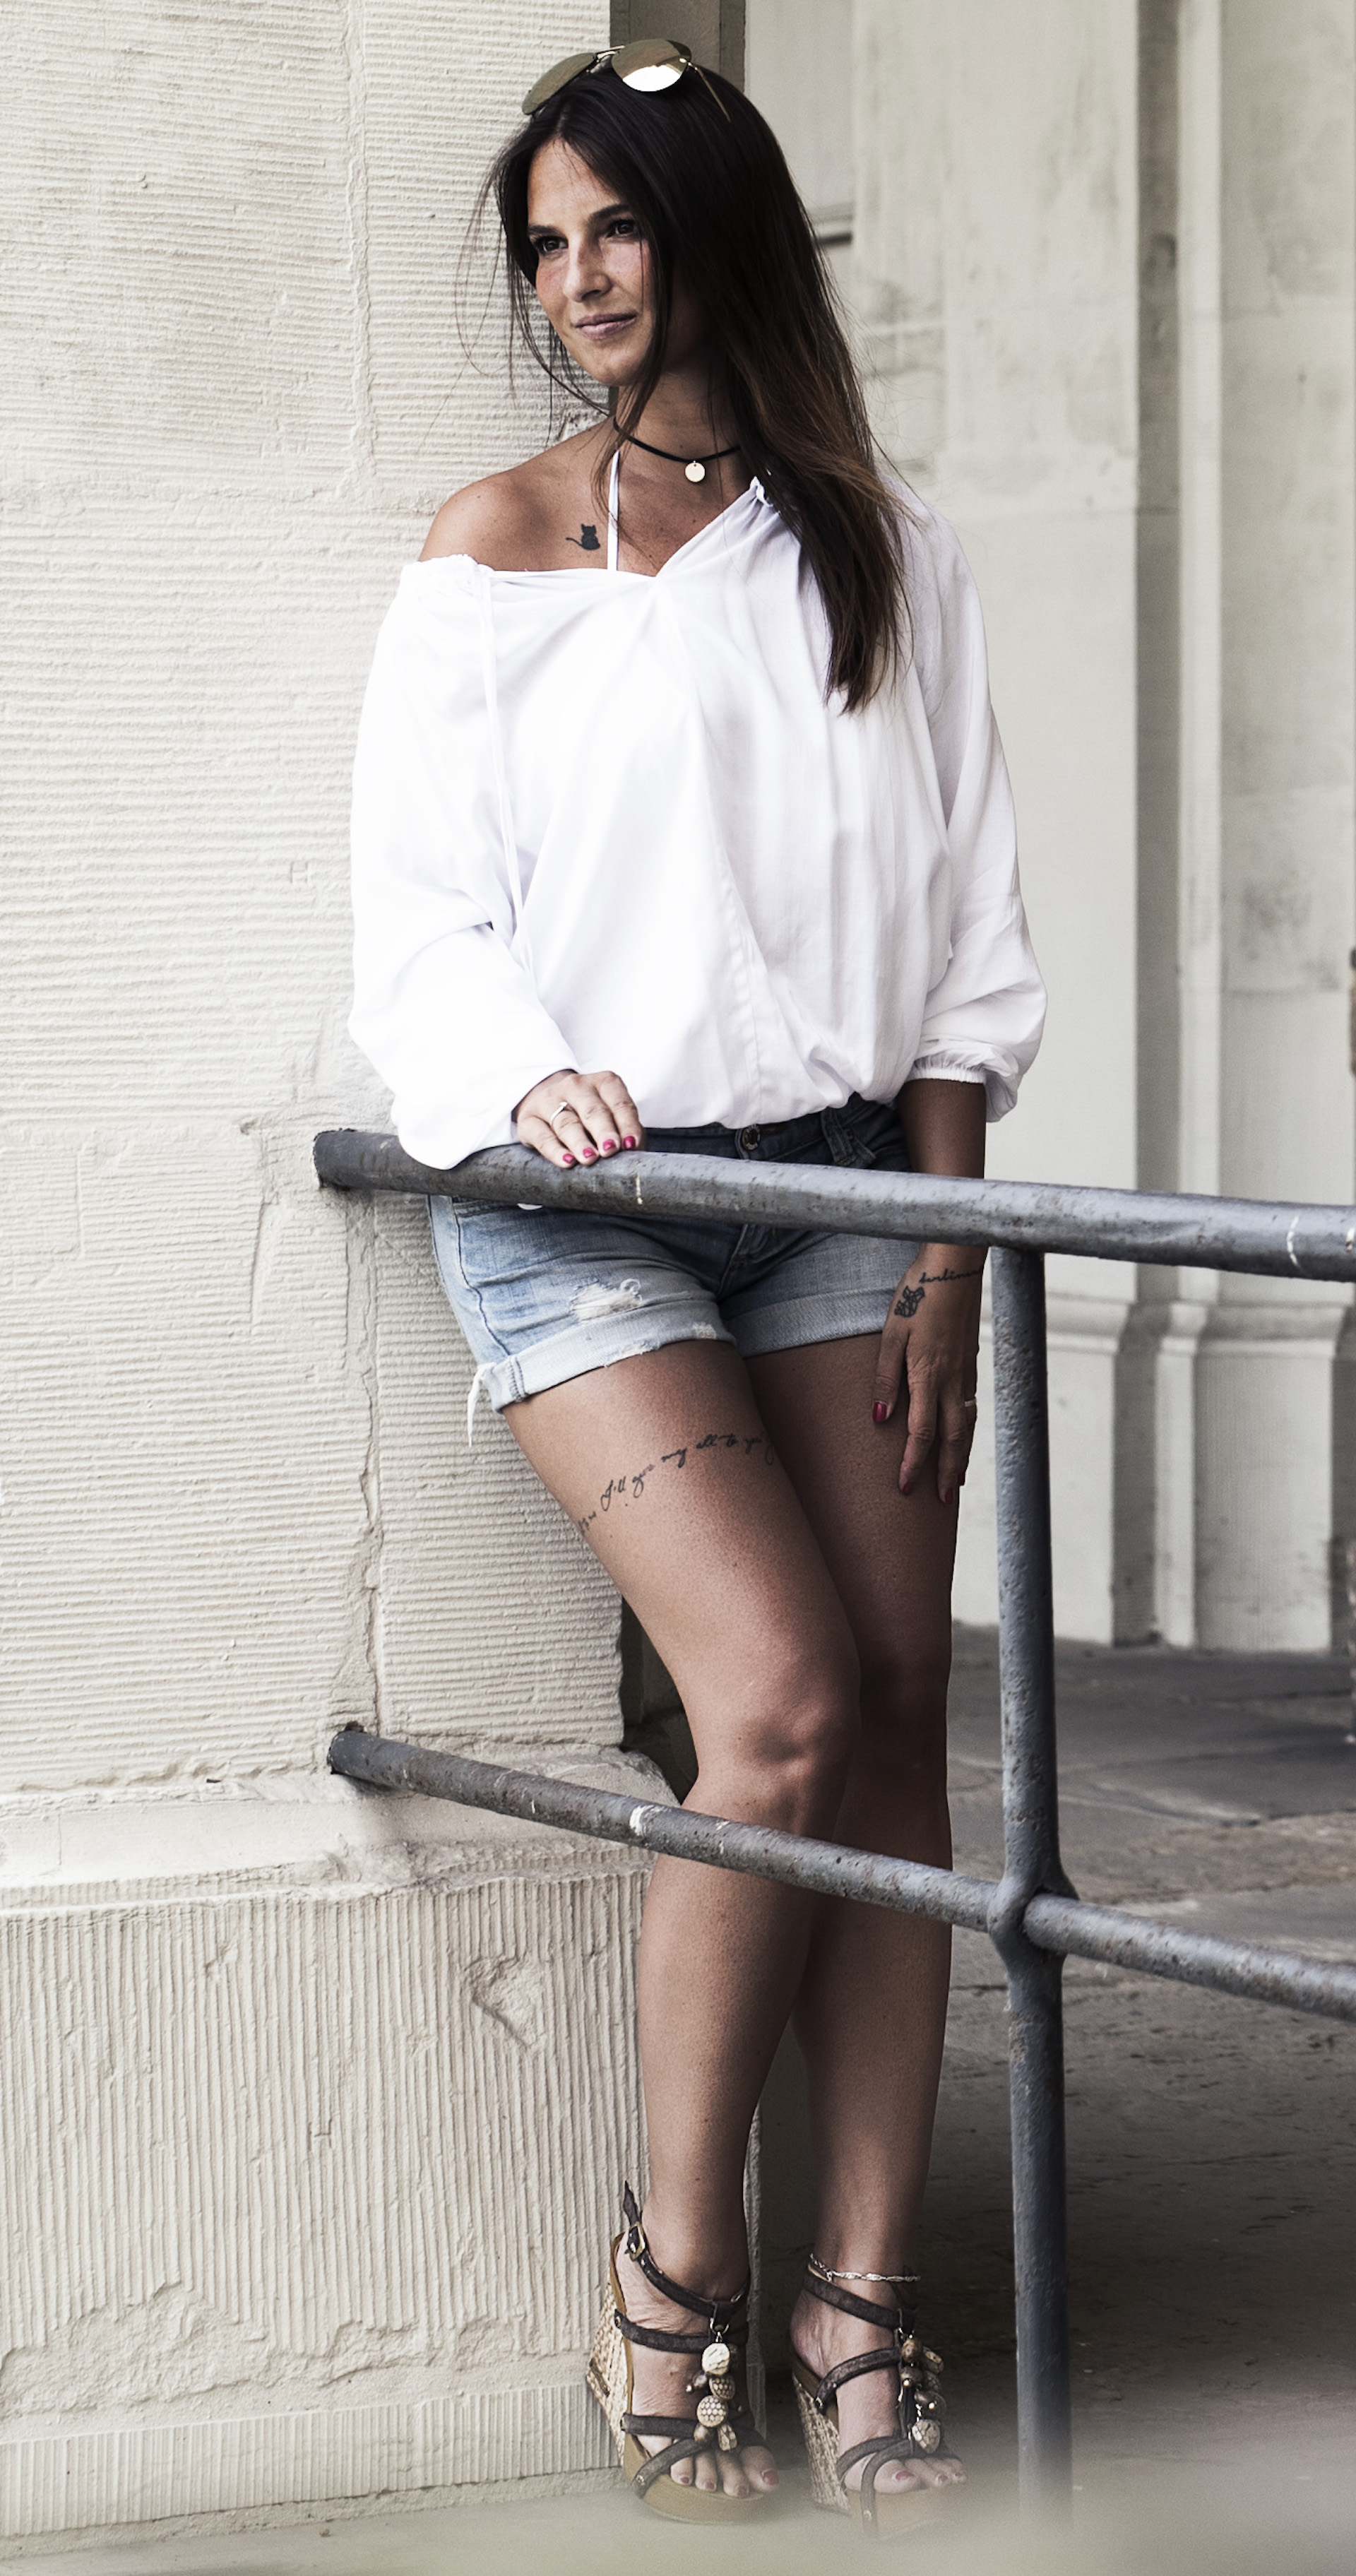 Shorts-Bluse_sommerlook